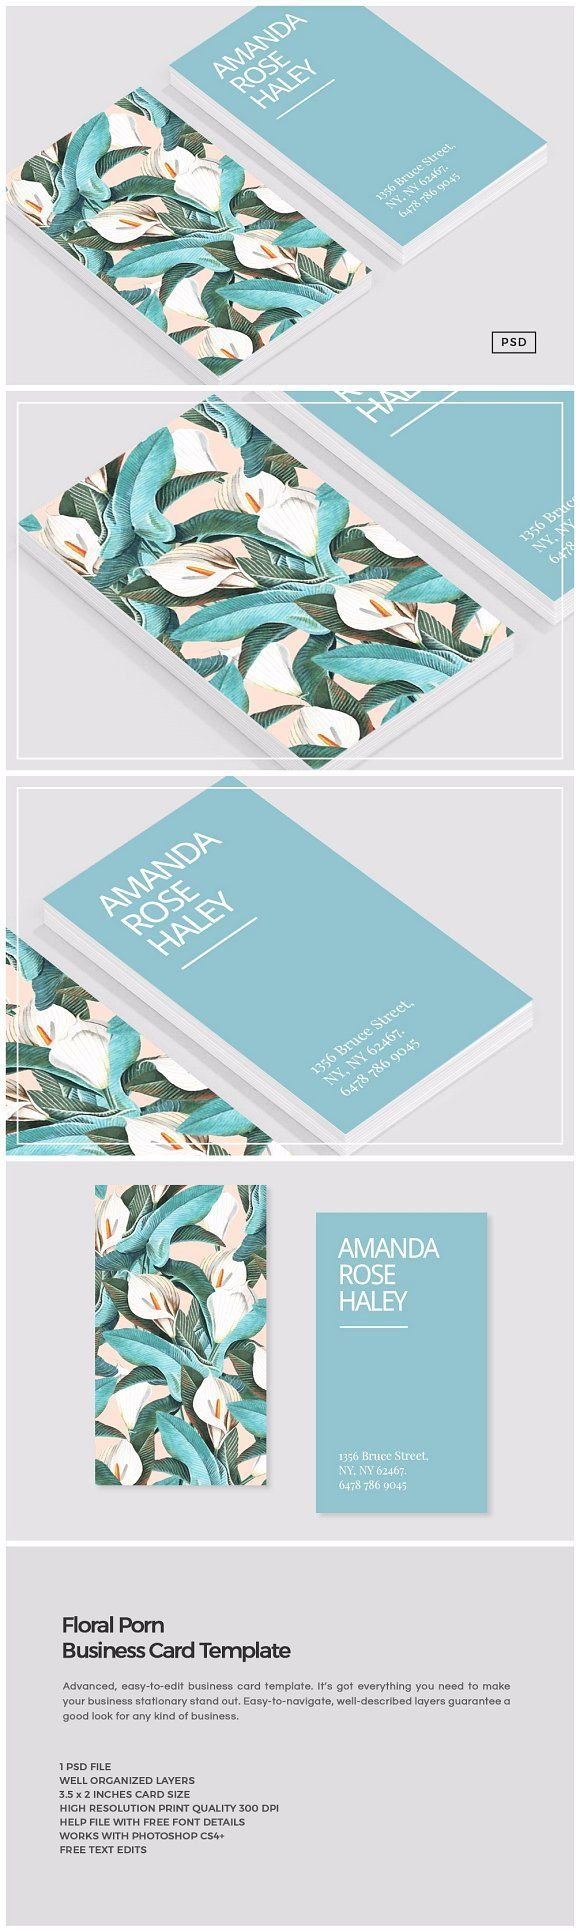 Floral Porn Business Card Template by The Design Label on @creativemarket